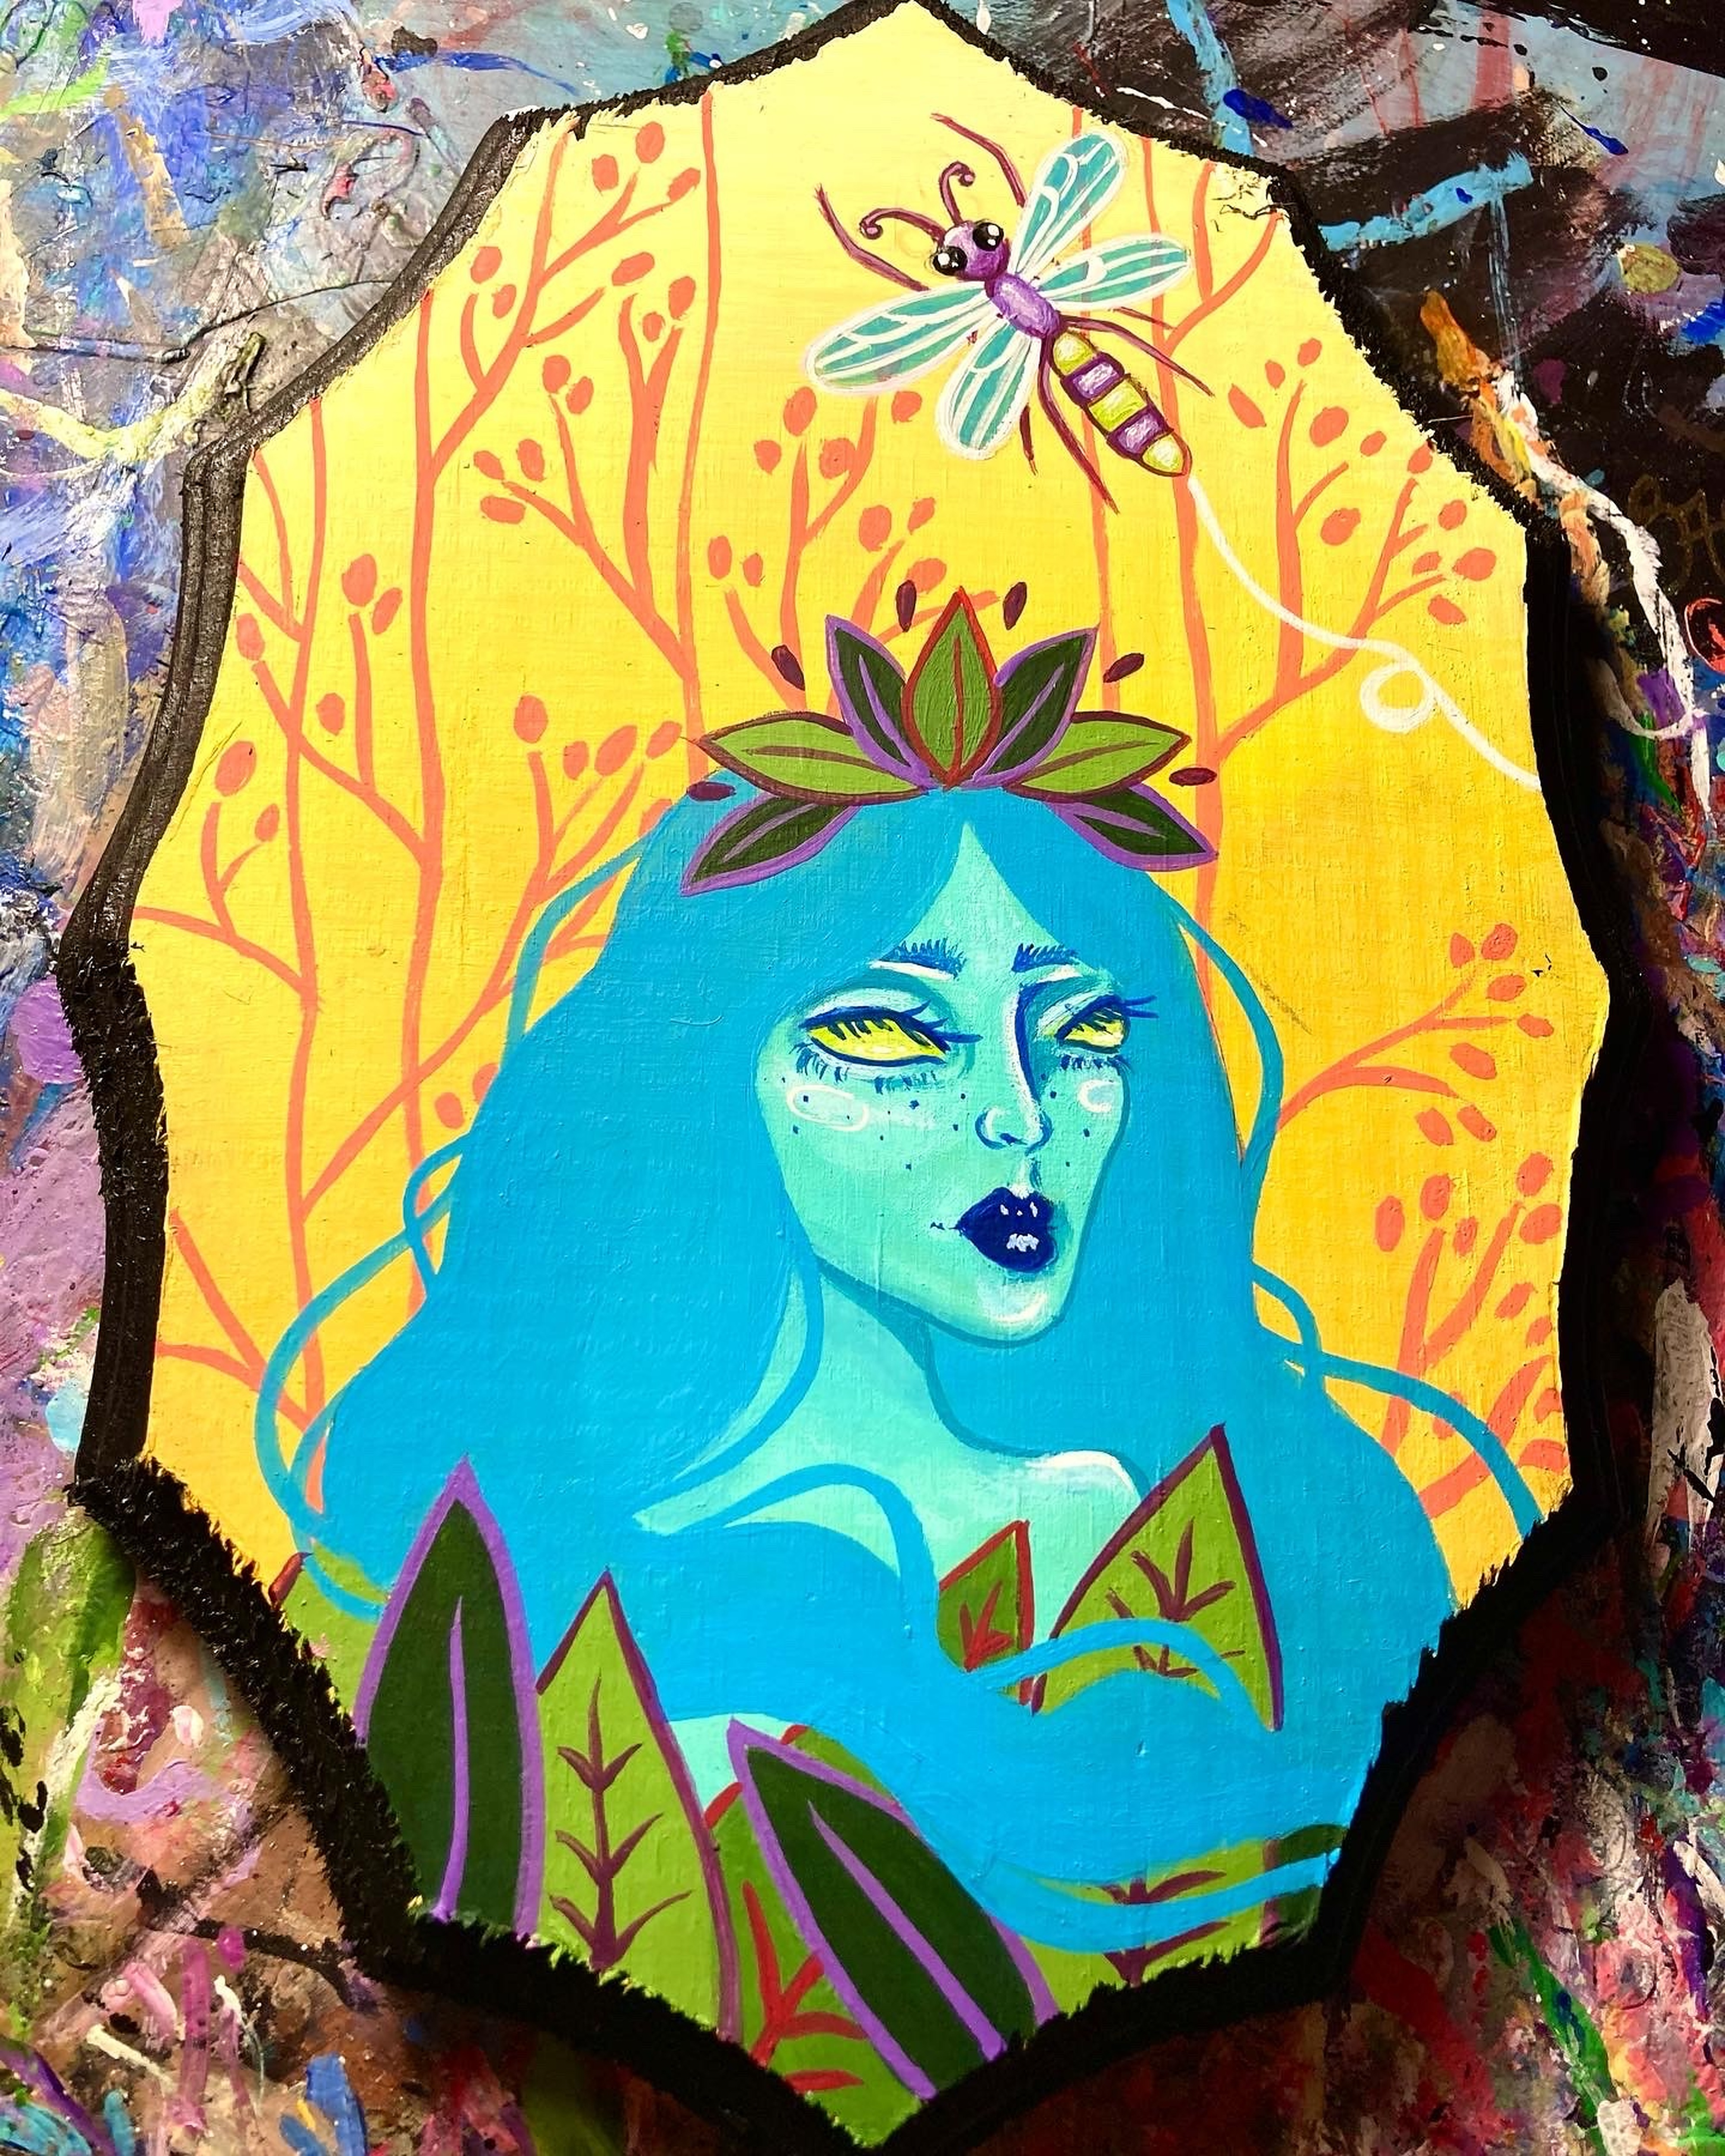 She Was the Forest by Sydney Roberts | ArtworkNetwork.com